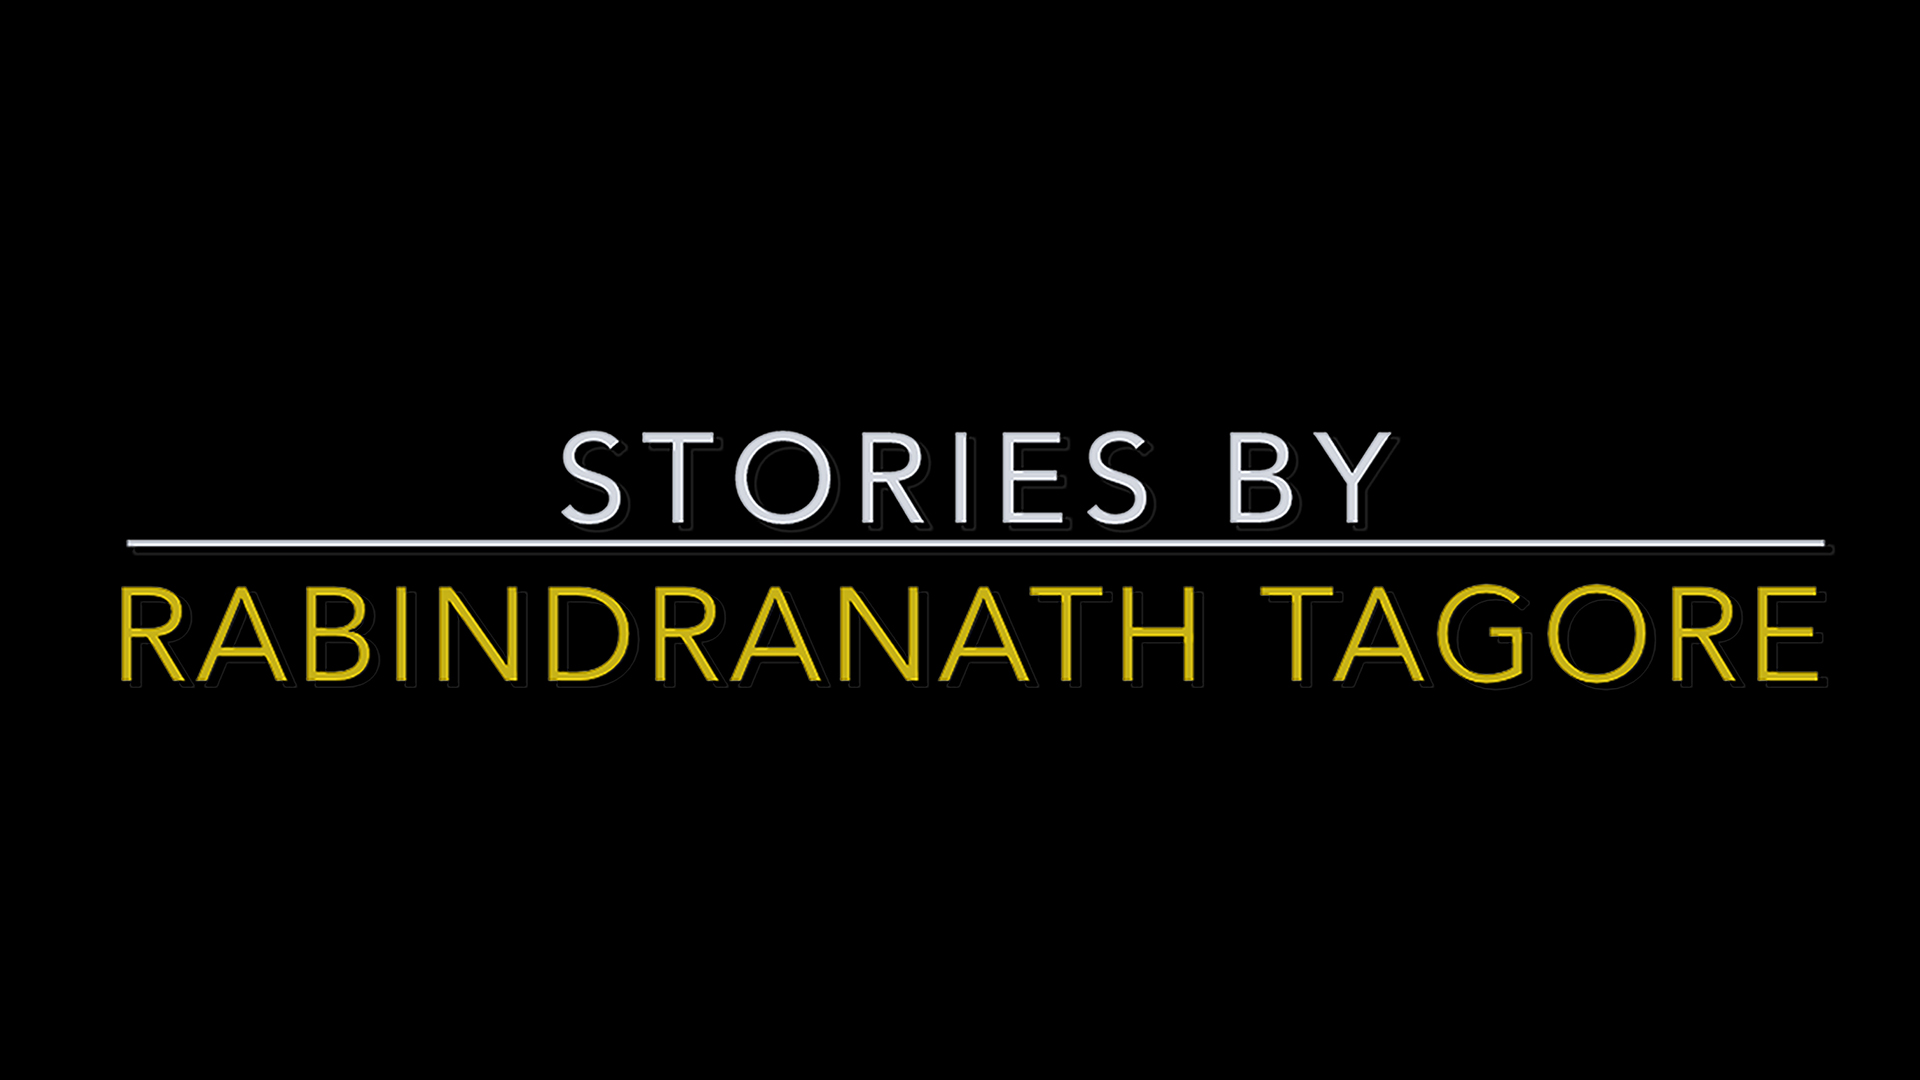 Stories by Rabindranath Tagore - Wikipedia